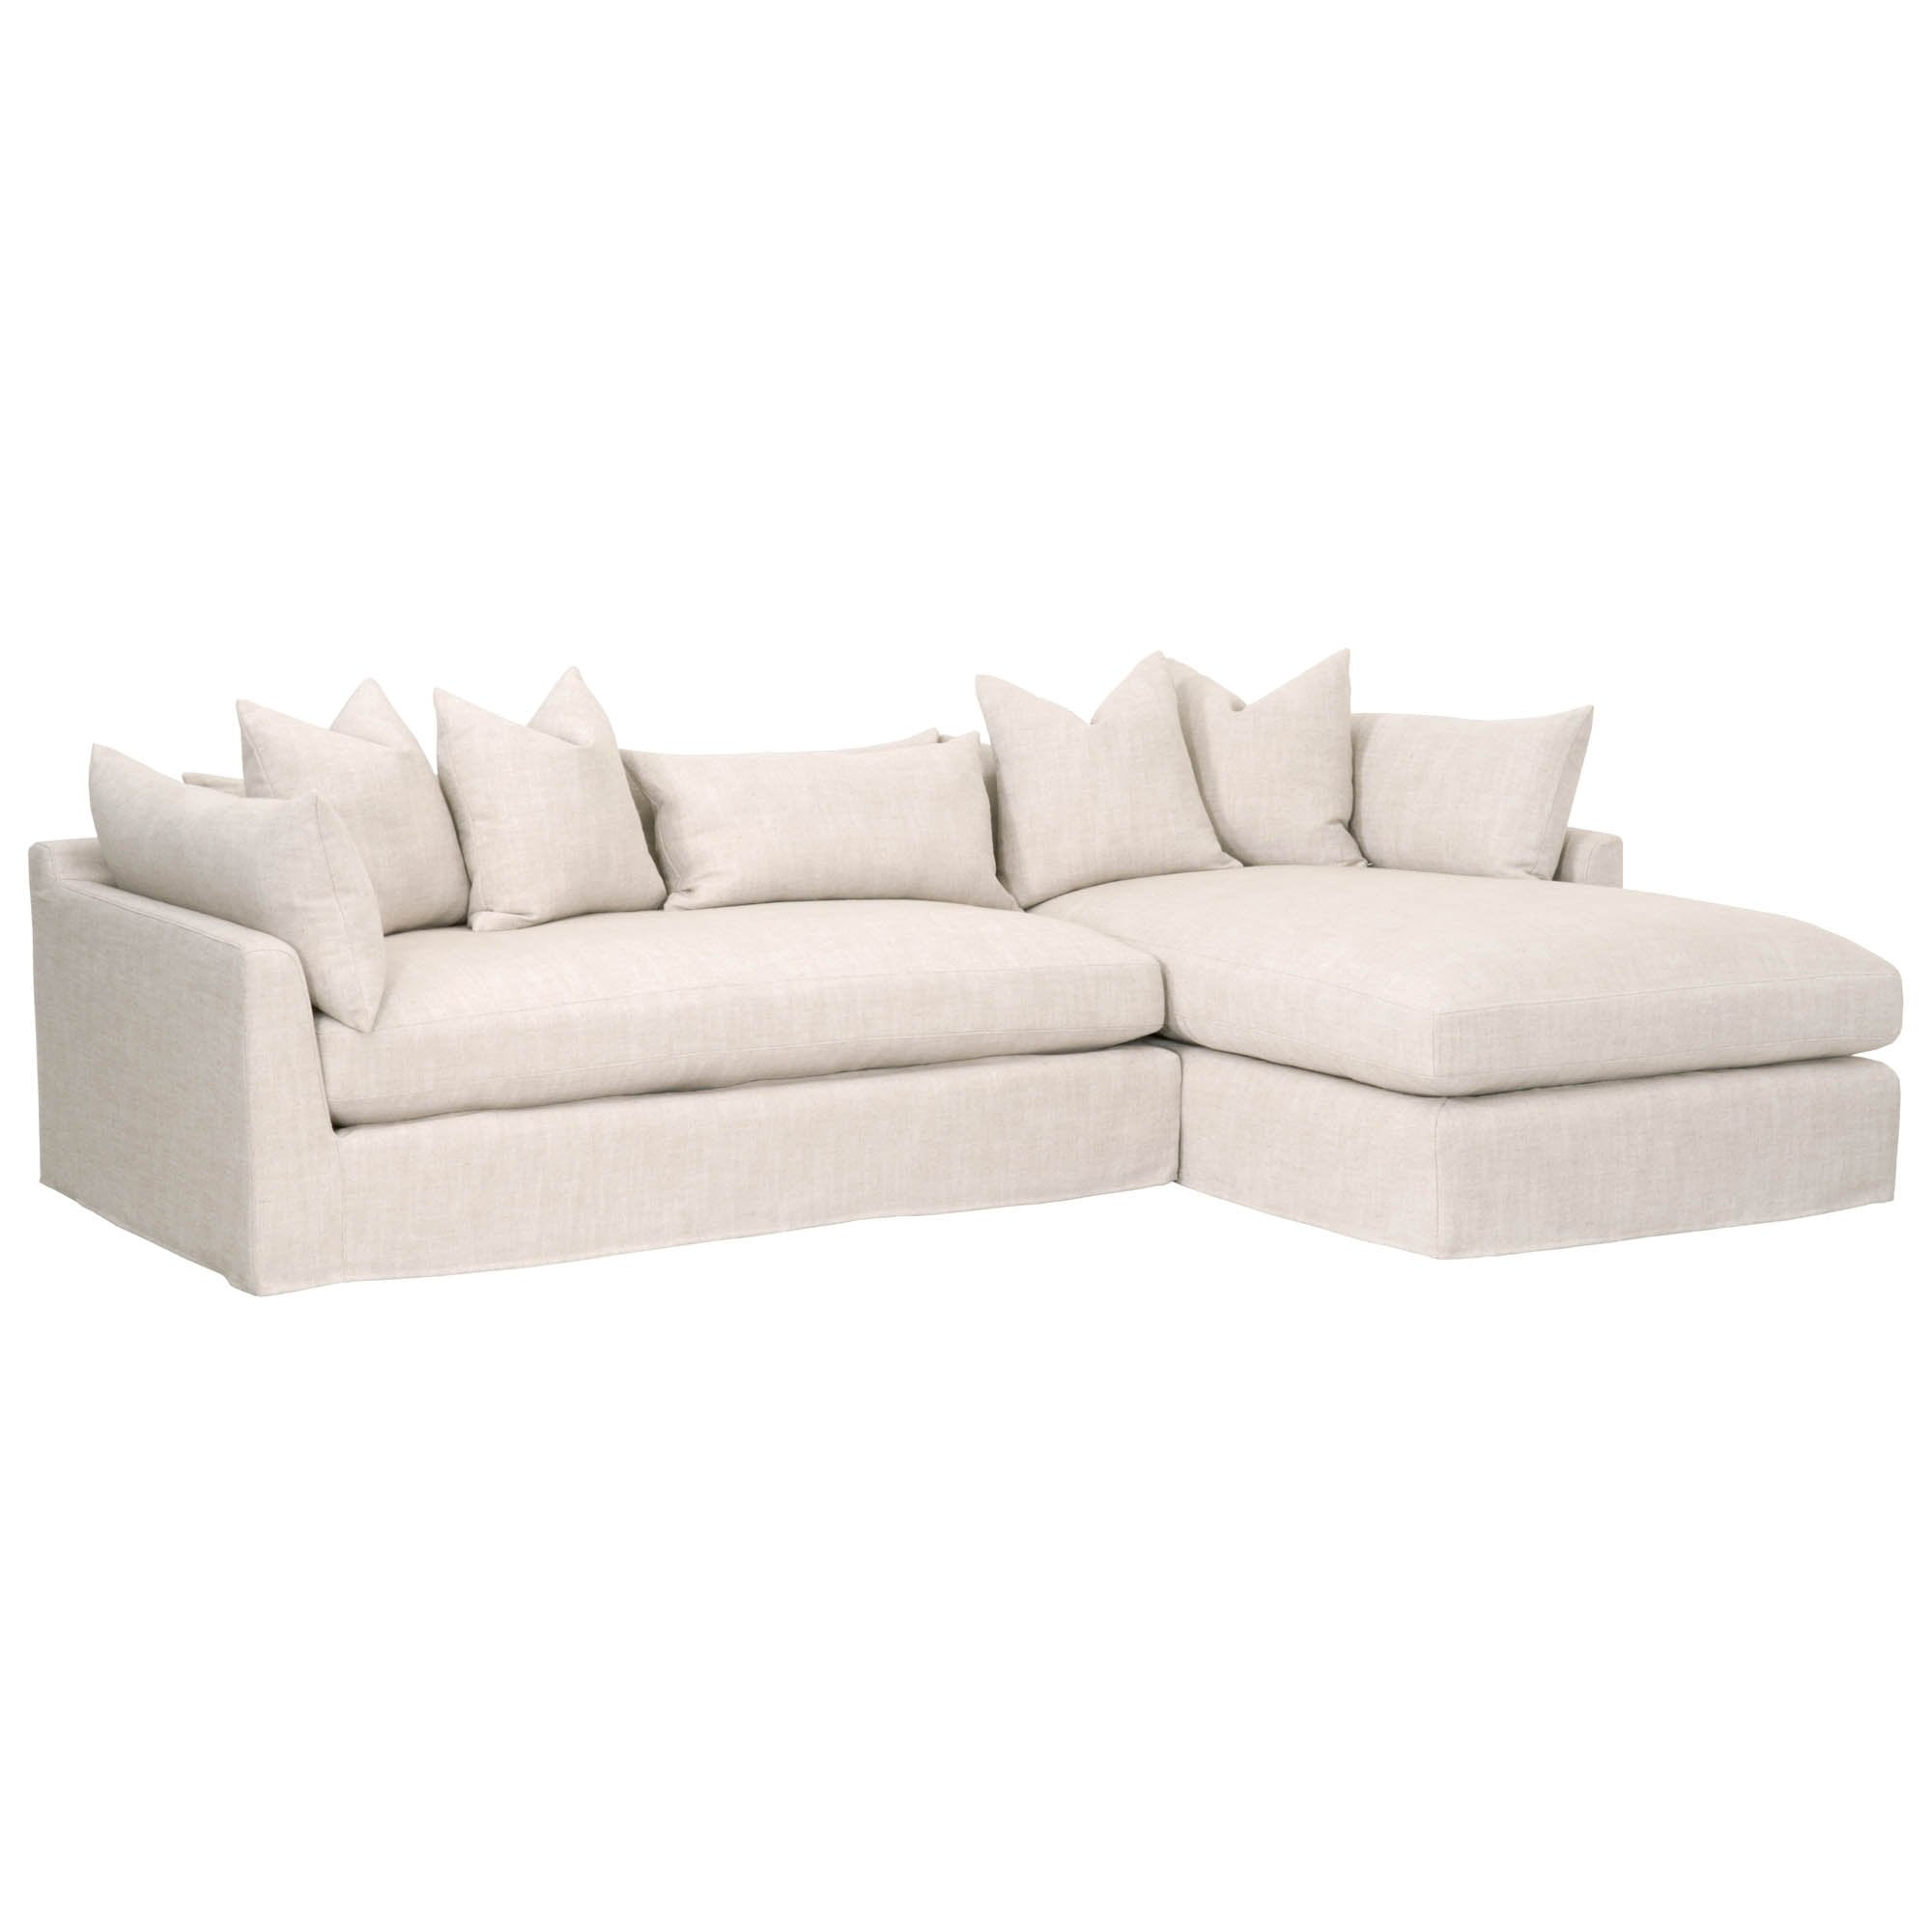 Tremendous Haven 110 Rf Lounge Slipcover Sofa Peter Andrews Pabps2019 Chair Design Images Pabps2019Com